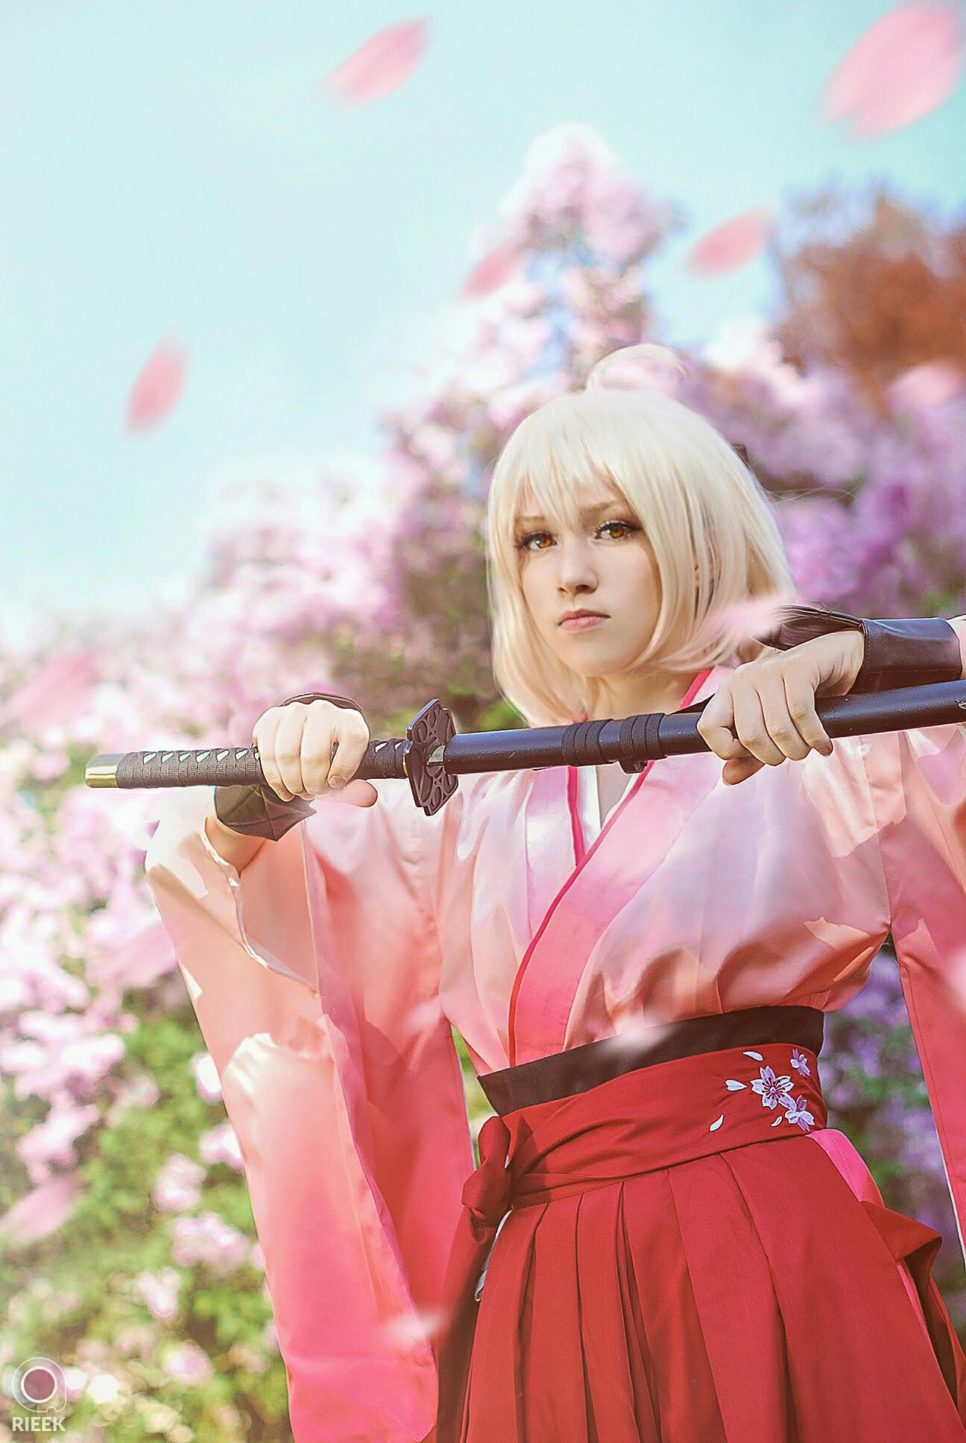 Okita Souji | Fate/Grand Order